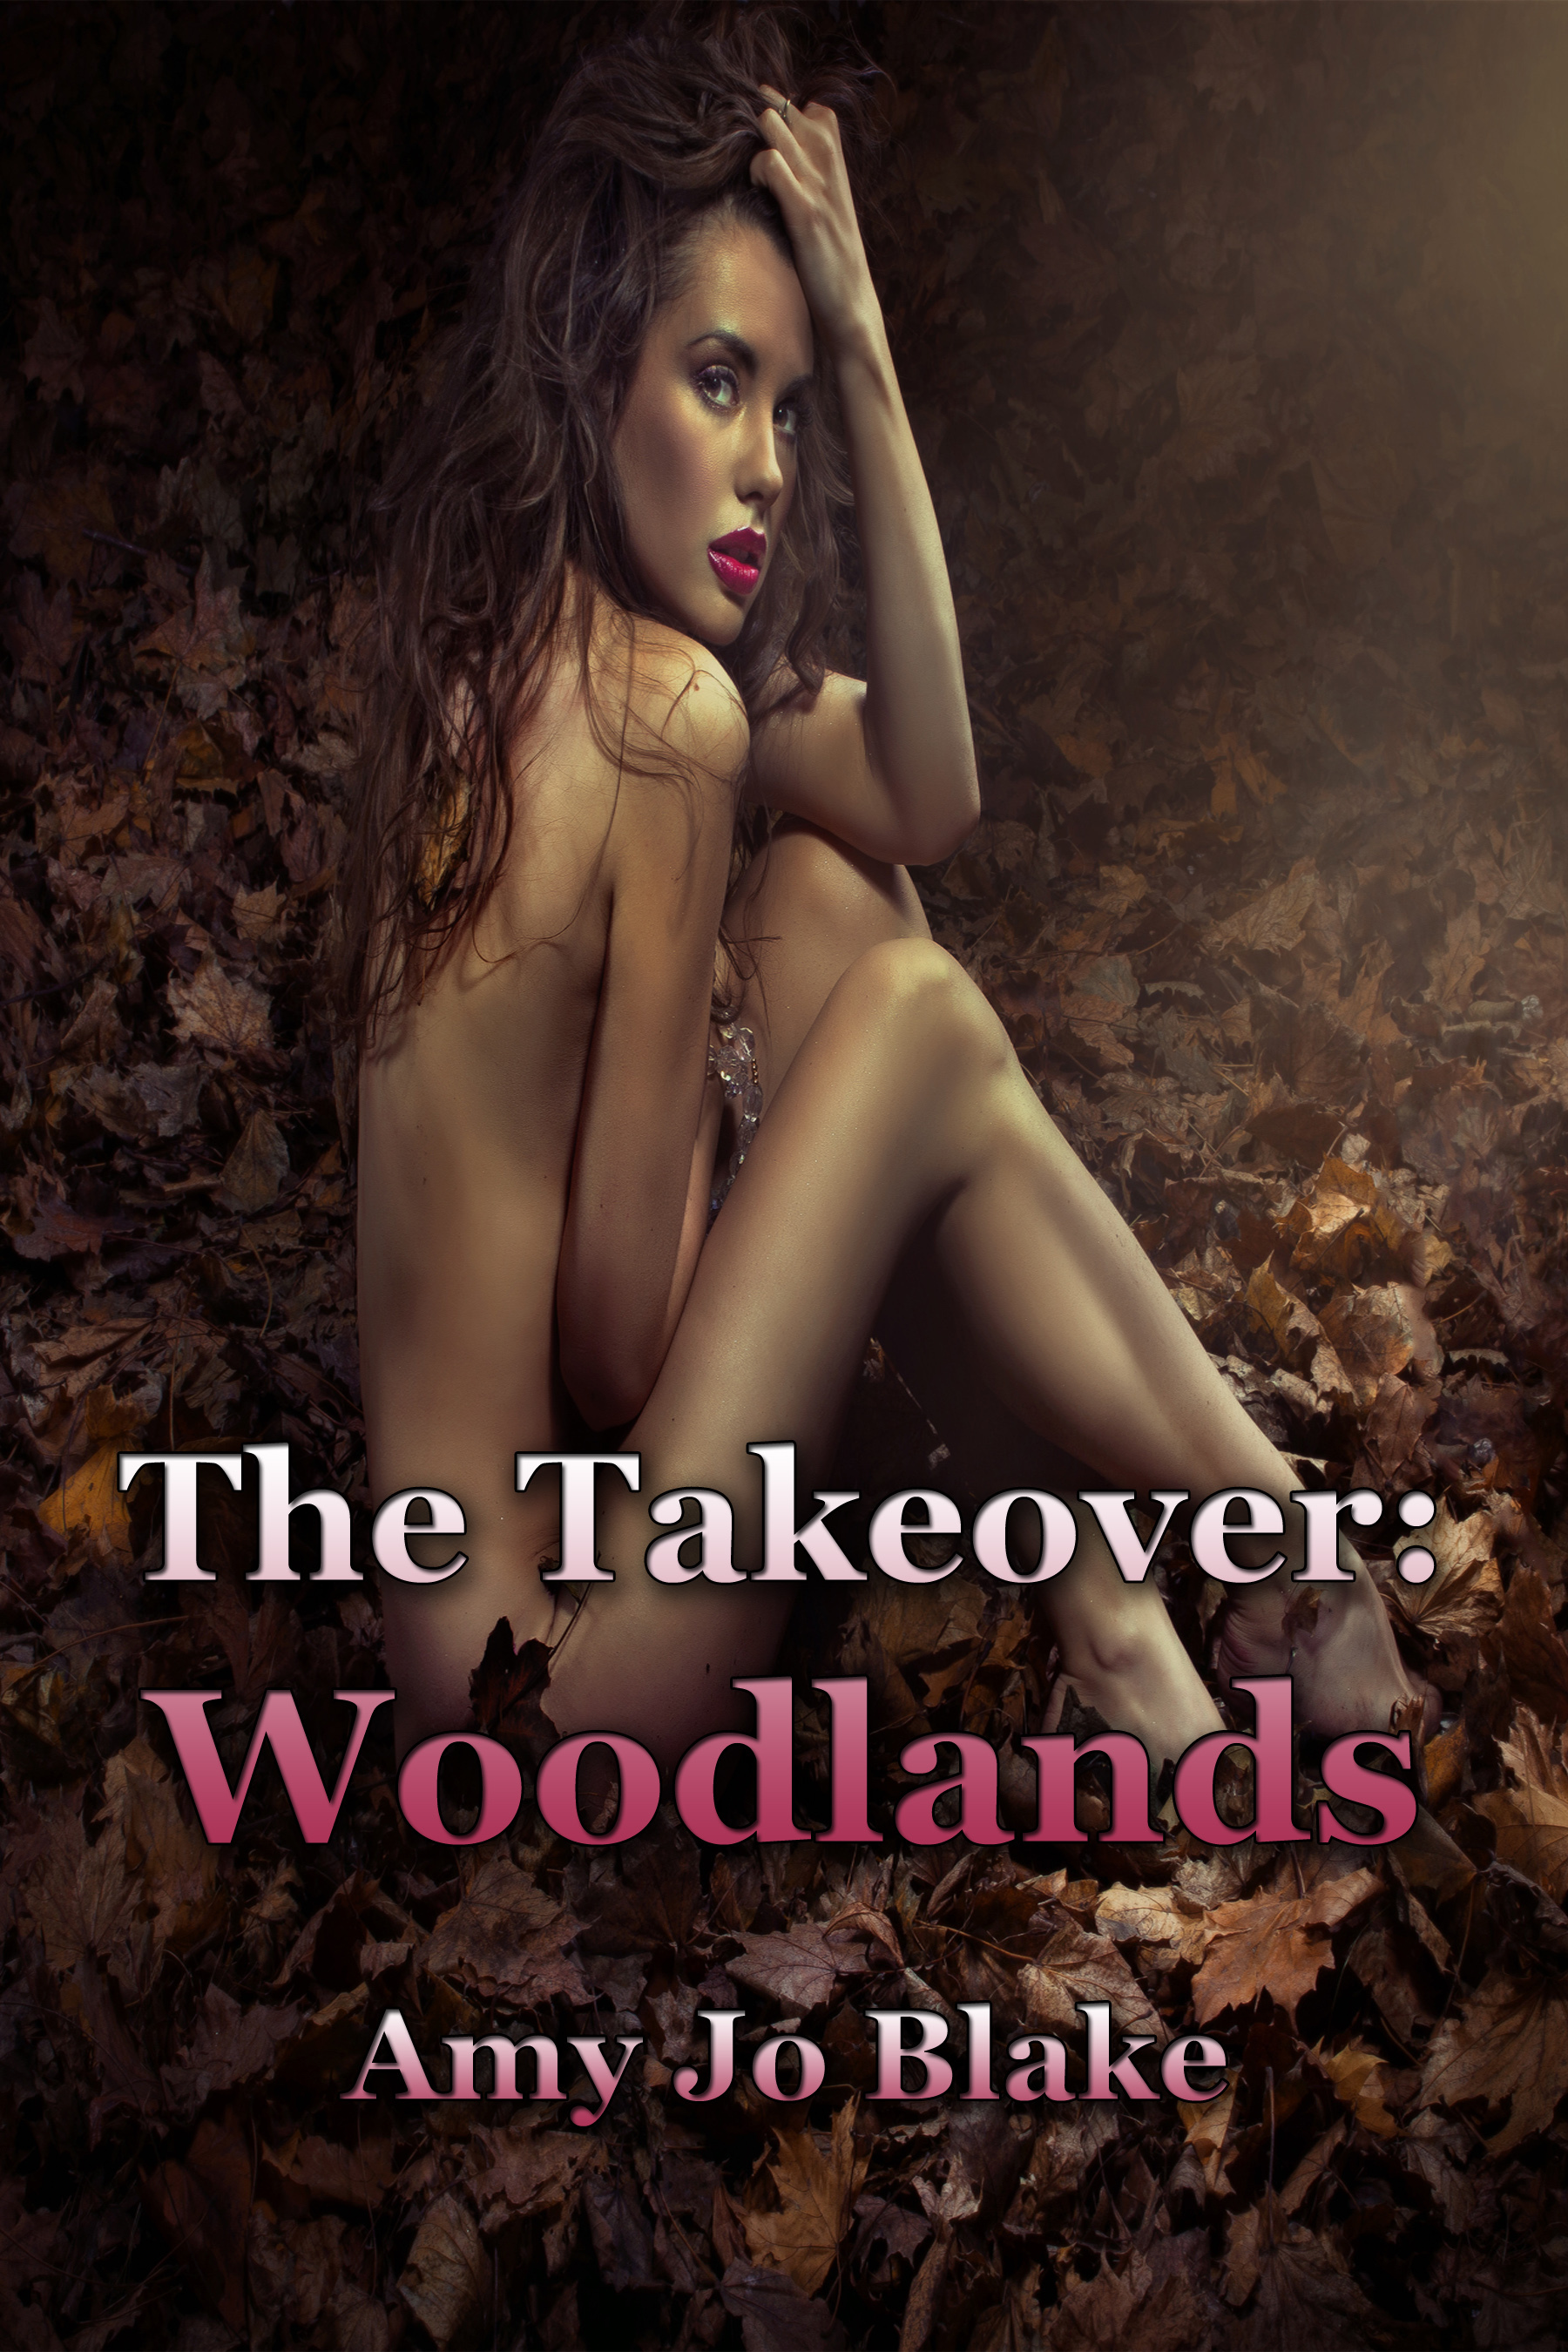 The Takeover: Woodlands Amy Jo Blake